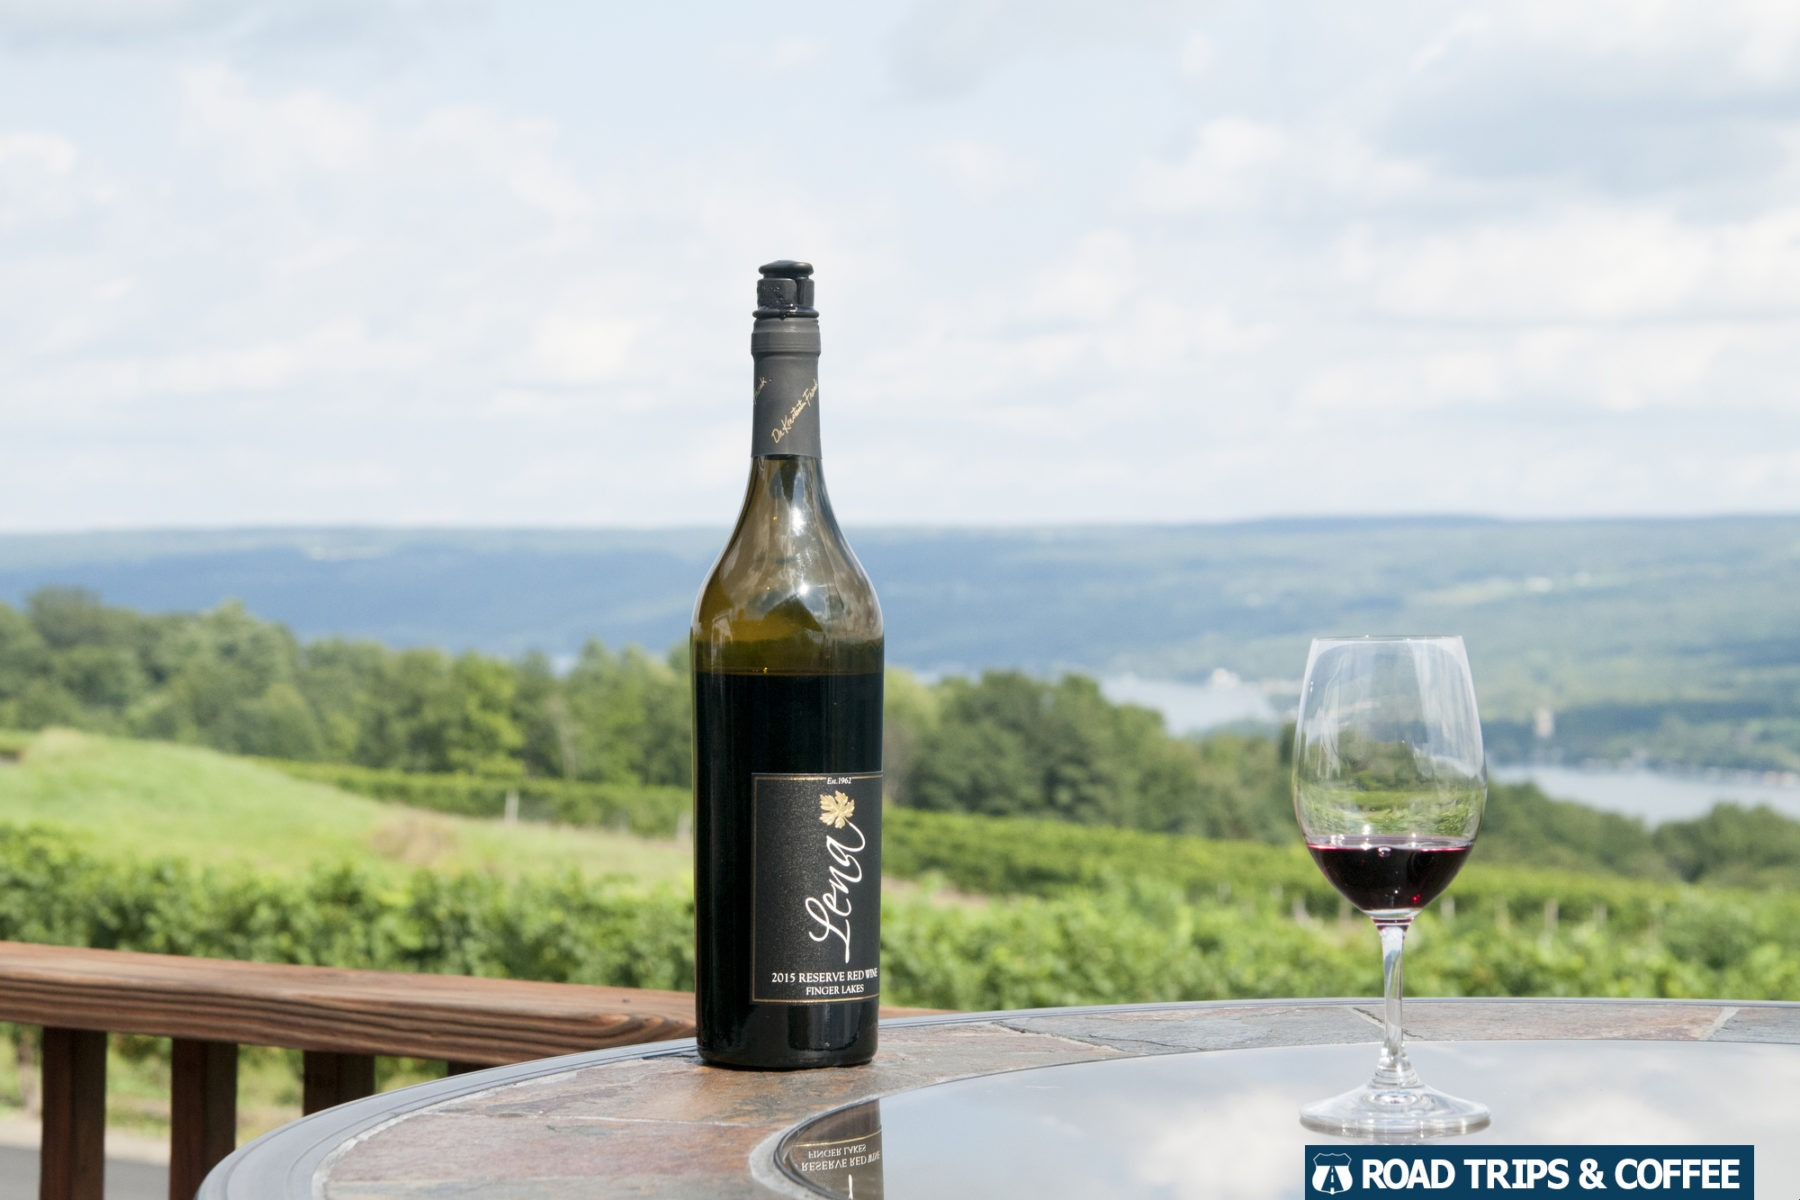 A bottle of great wine with a view of Keuka Lake at the Dr. Konstantin Frank Winery in Hammondsport, New York